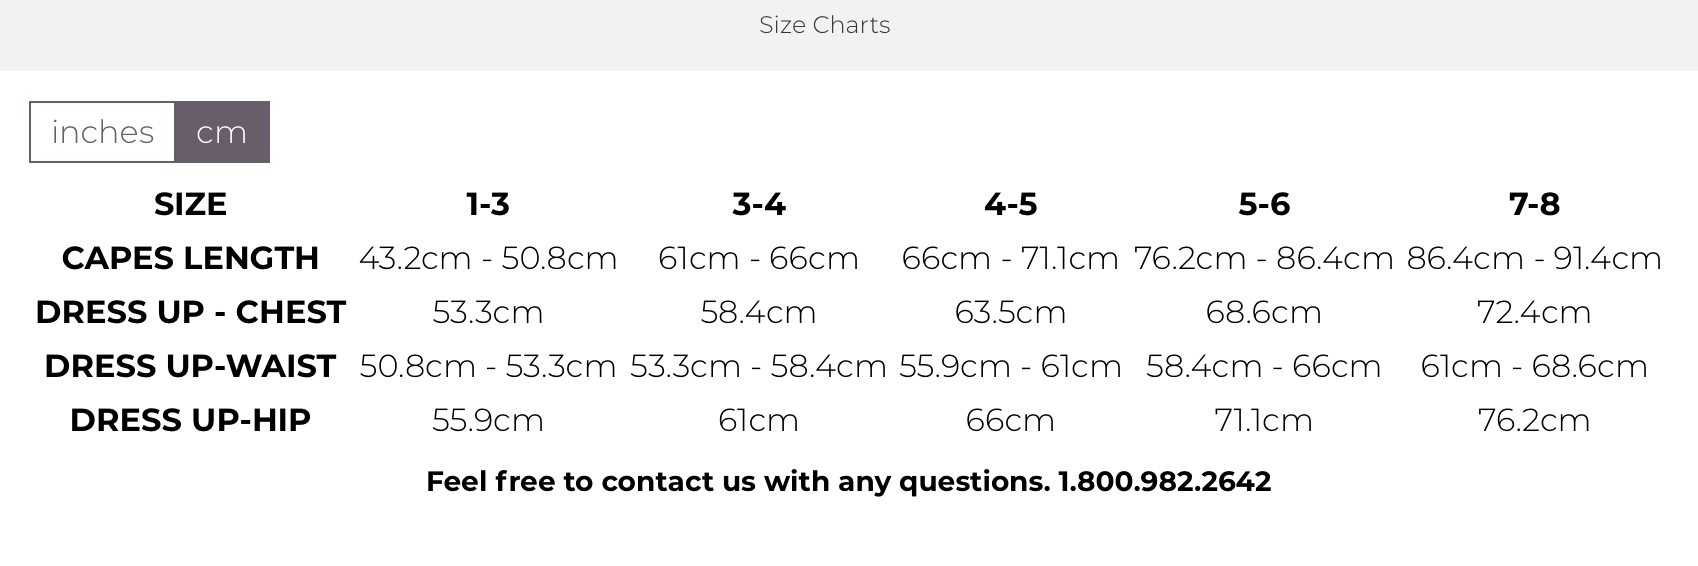 Great Pretenders Sizing Chart